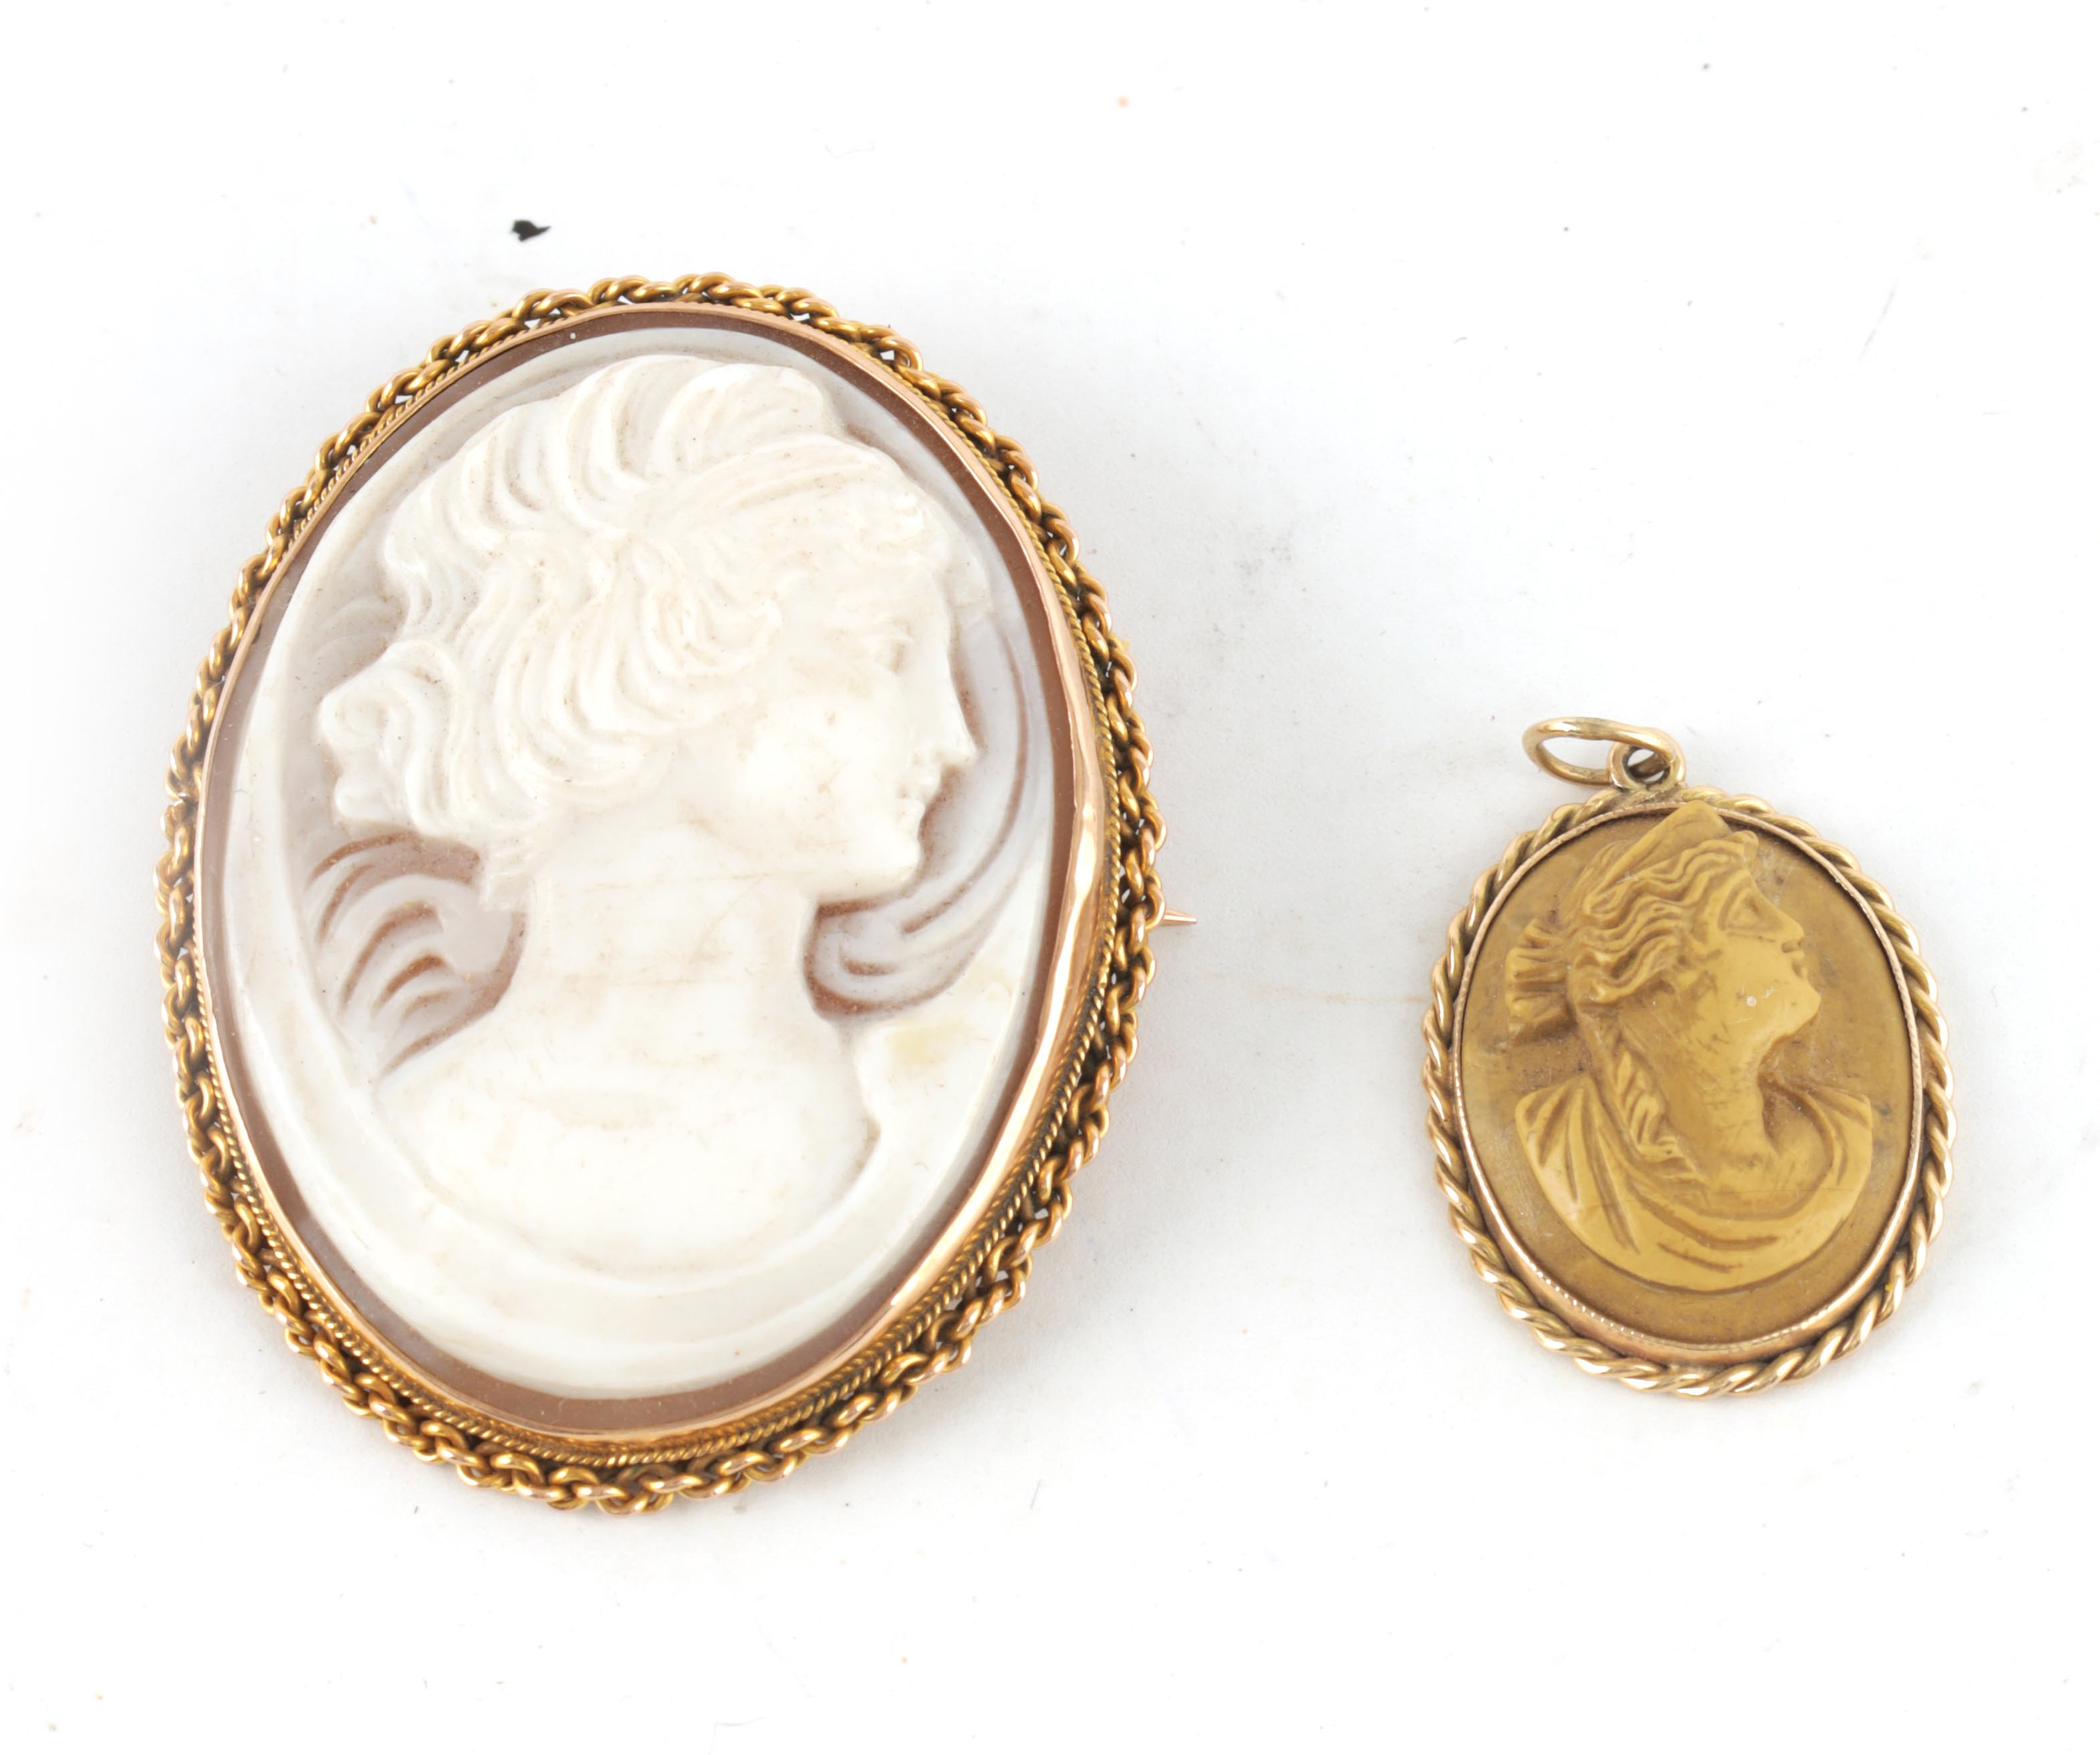 TWO LADIES GOLD FRAMED CAMEOS with finely carved portraits surrounded by rope twist frames 5cm